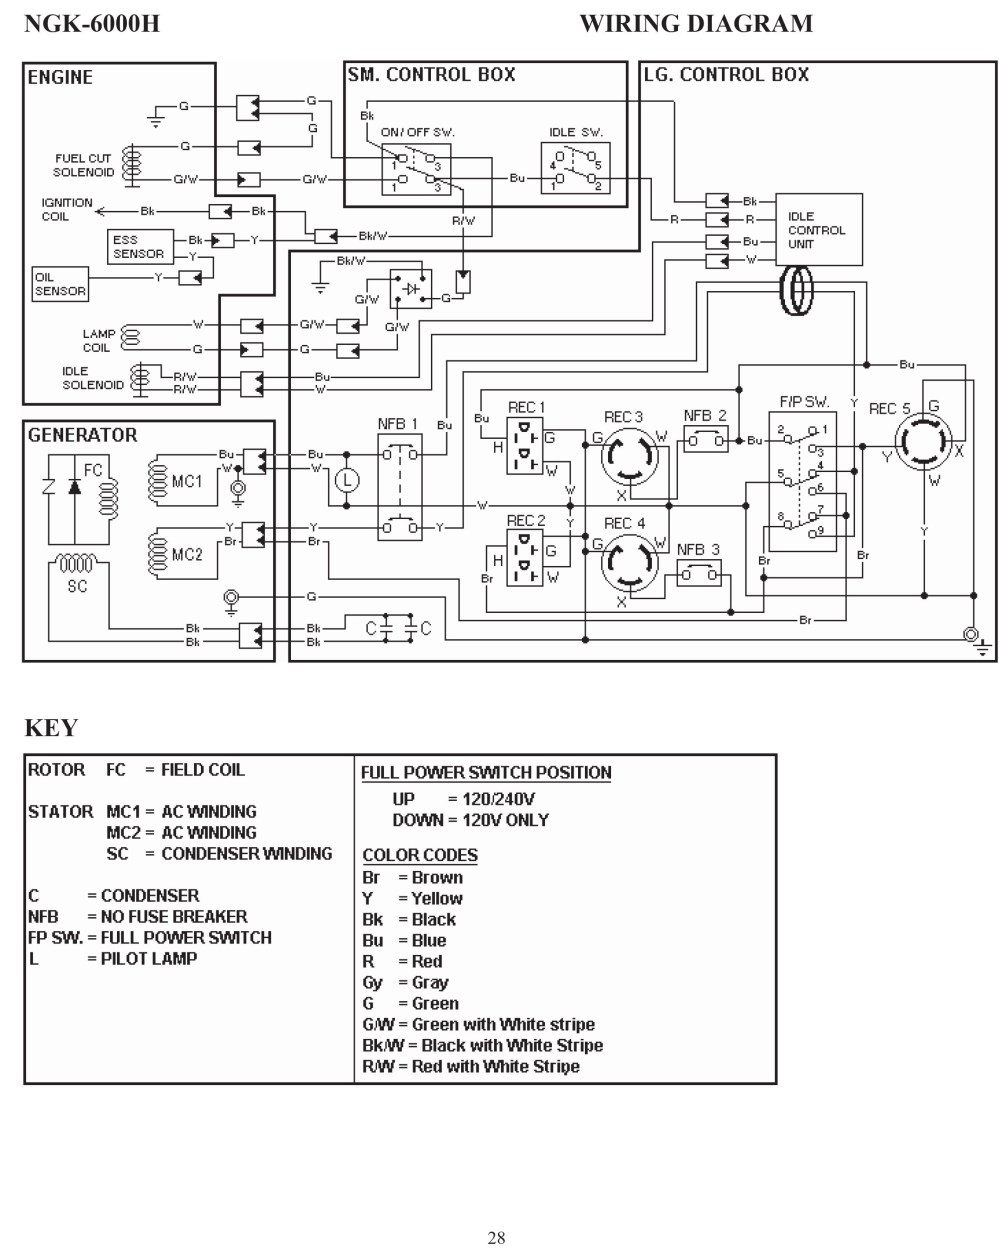 medium resolution of usa power schematic wiring wiring diagram article review wiring diagram also mon electrical symbols on emerson electric motor